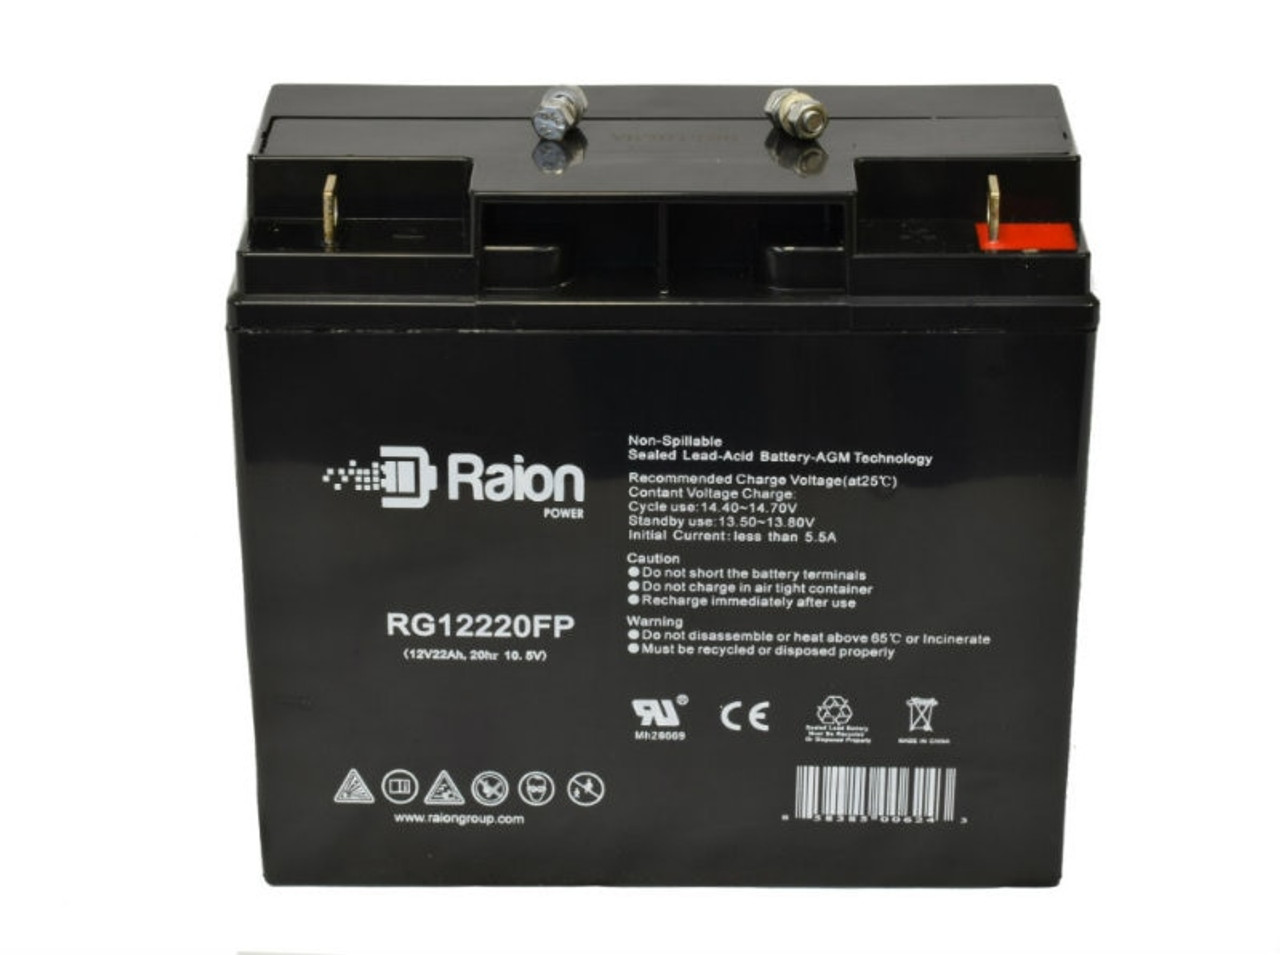 Raion Power 12V 22Ah SLA Battery With FP Terminals For Silent Partner Star Tennis Ball Machine Large